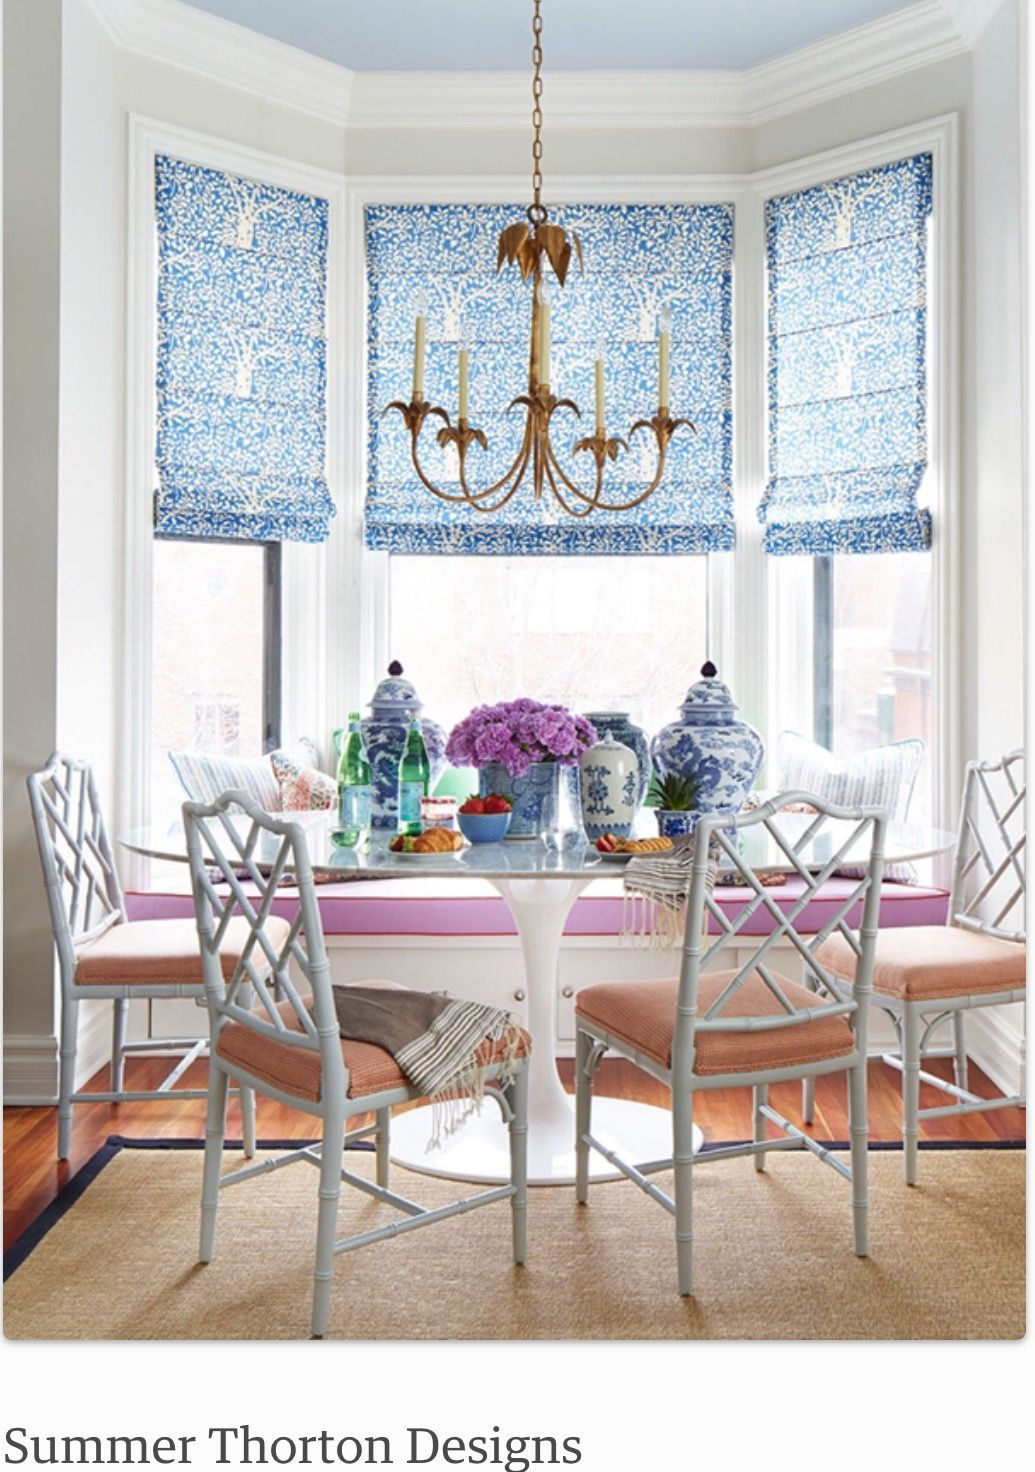 Kitchen bay window exterior  pin by emzie on living room ideas in   pinterest  dining